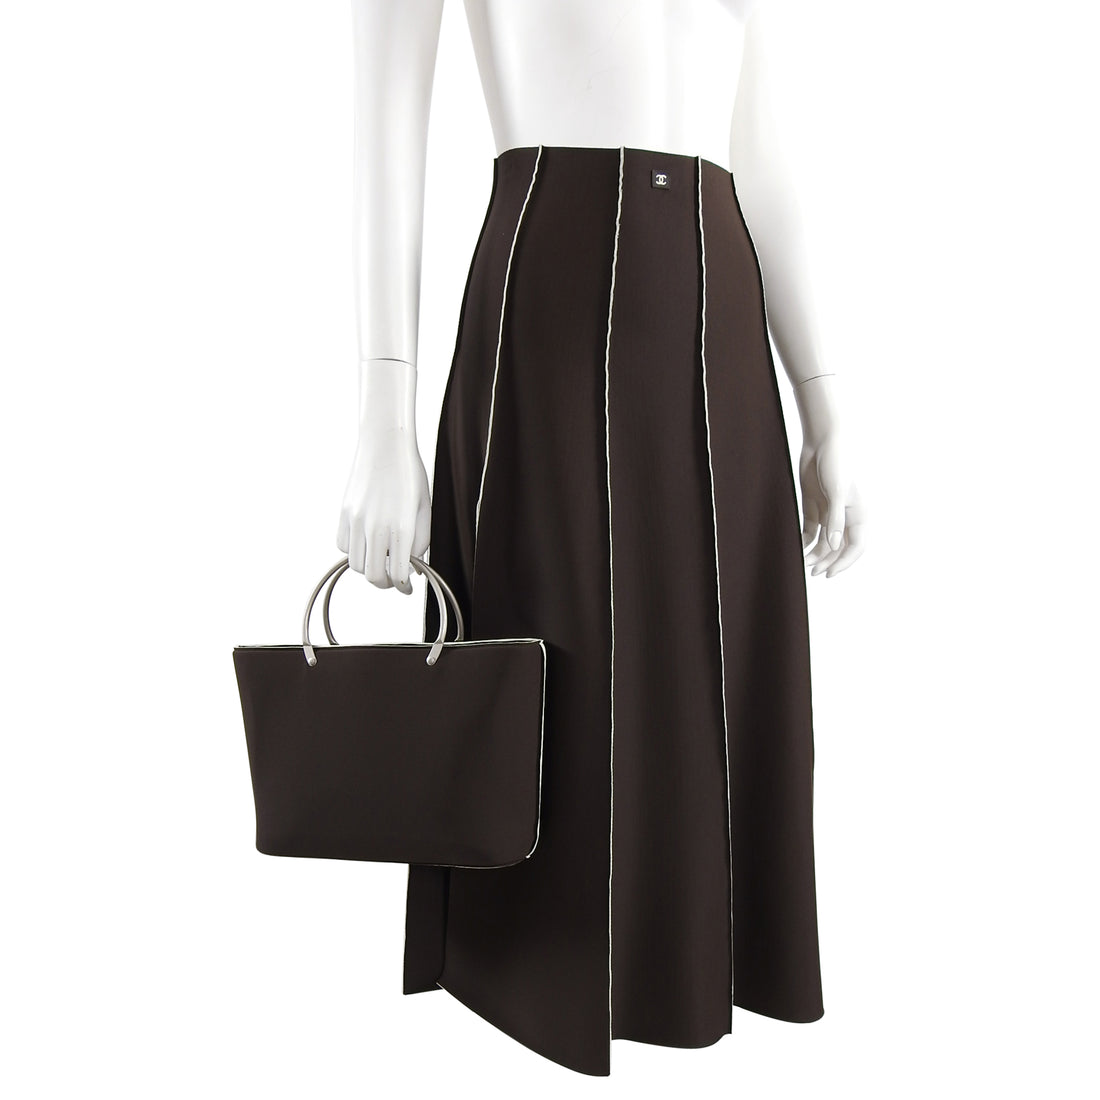 Chanel Vintage 1997 Brown Neoprene Skirt and Bag Set